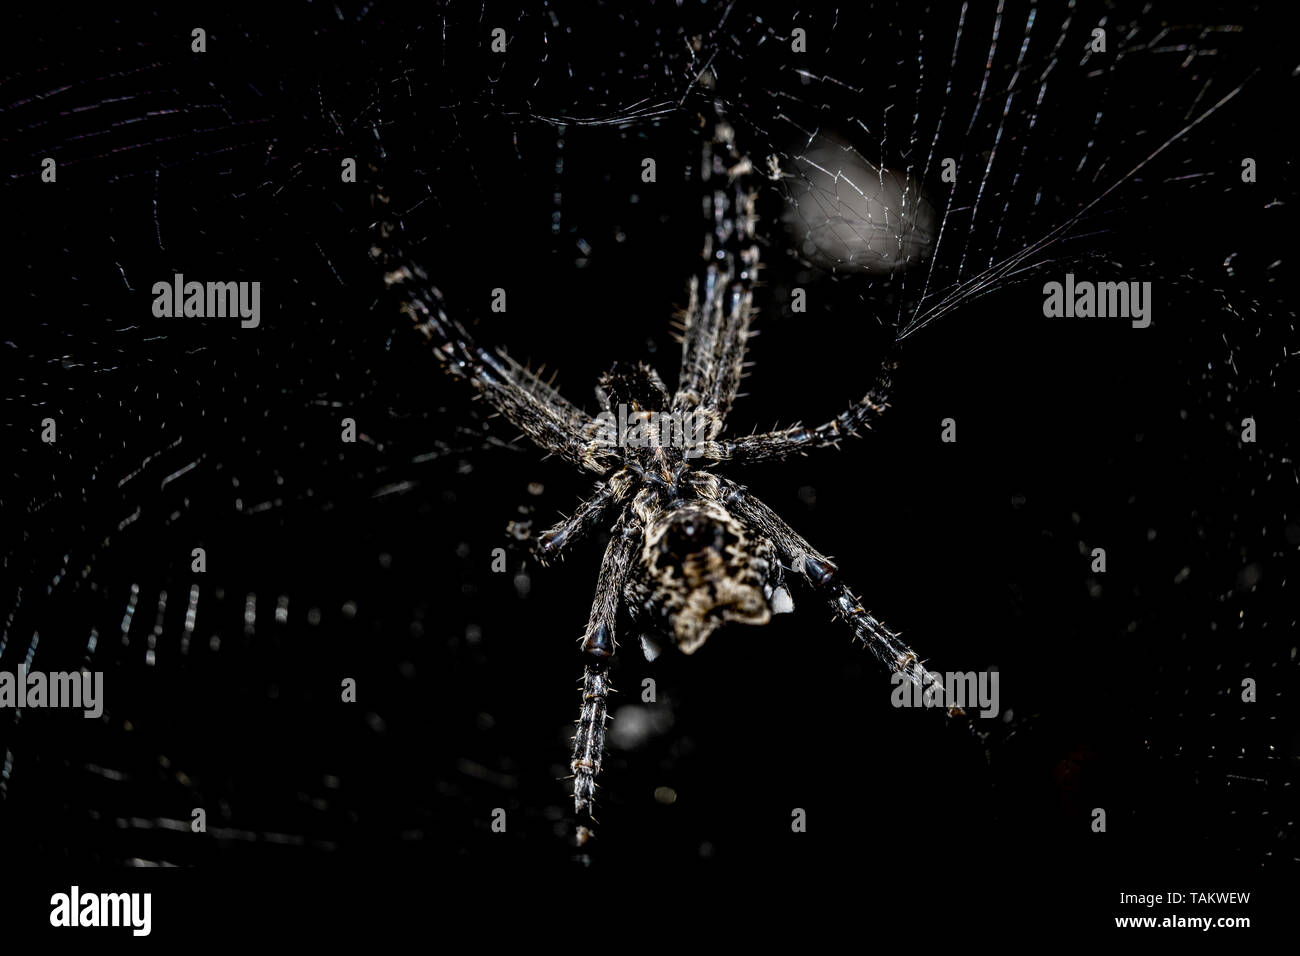 arguope trifasciata hanging on its own web - Stock Image